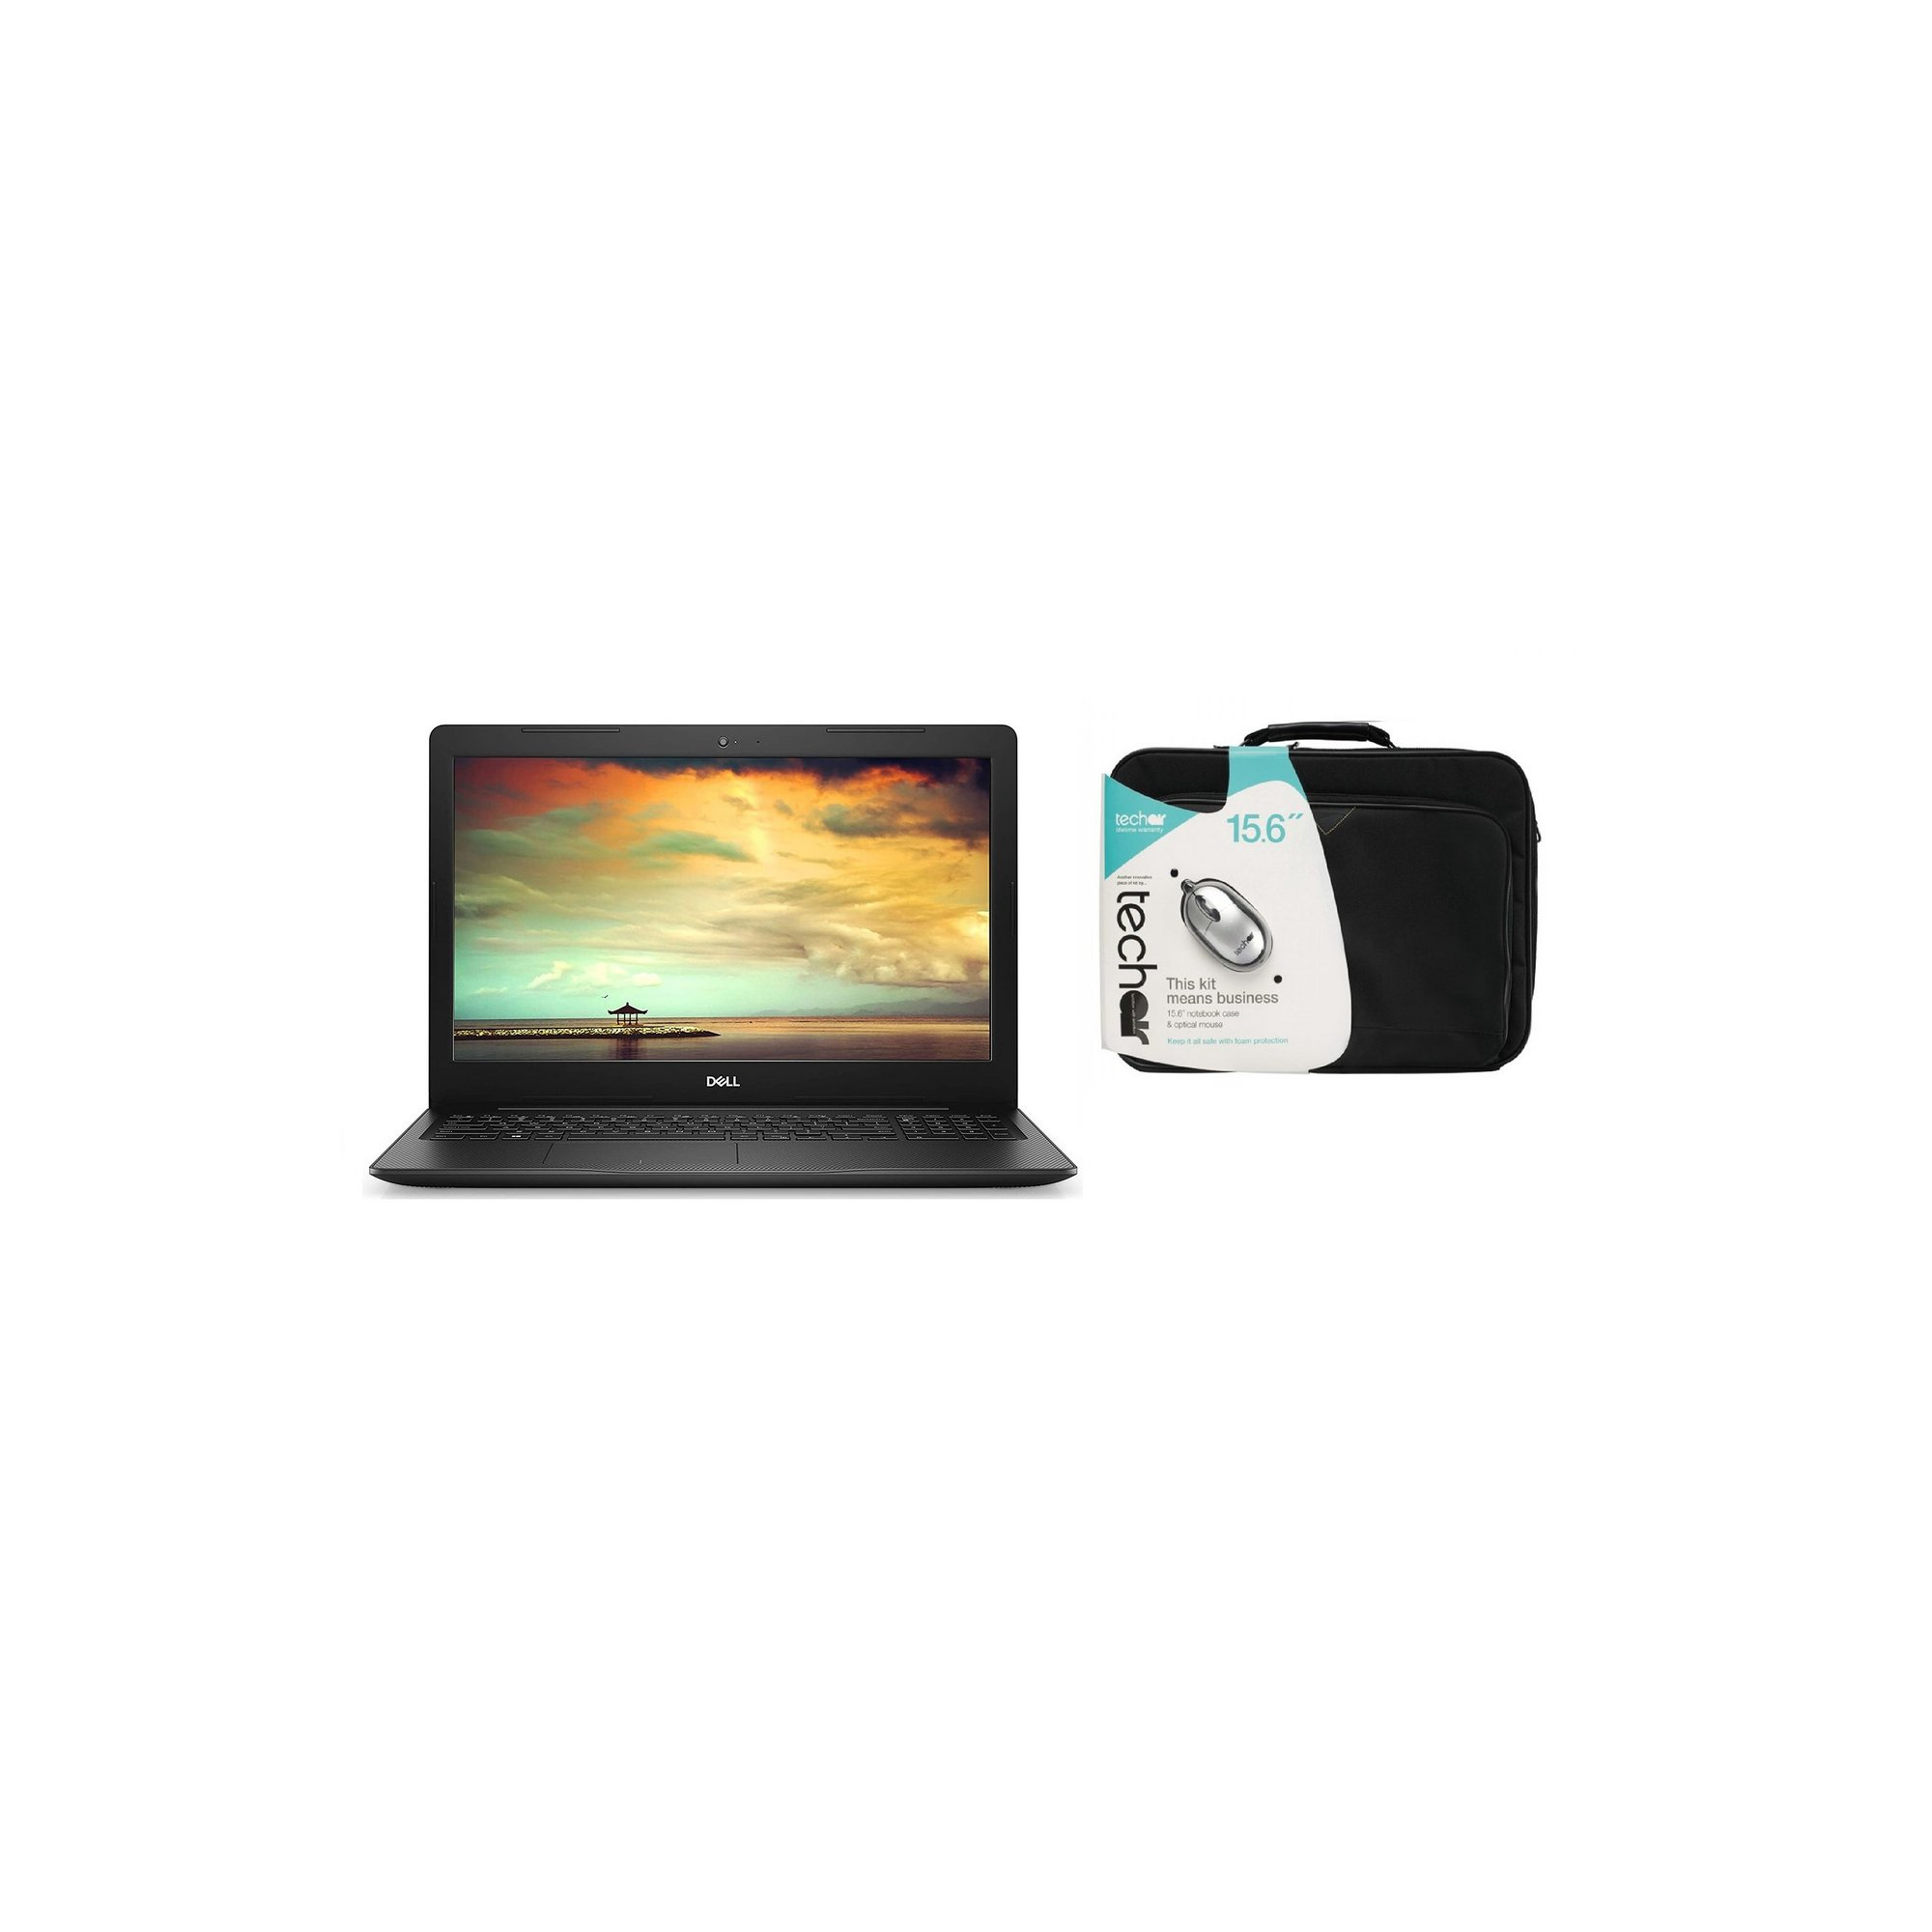 Image of Dell Inspiron 15 3000 15 Inch 4GB&#44 128GB Win 10 Laptop and Cas...